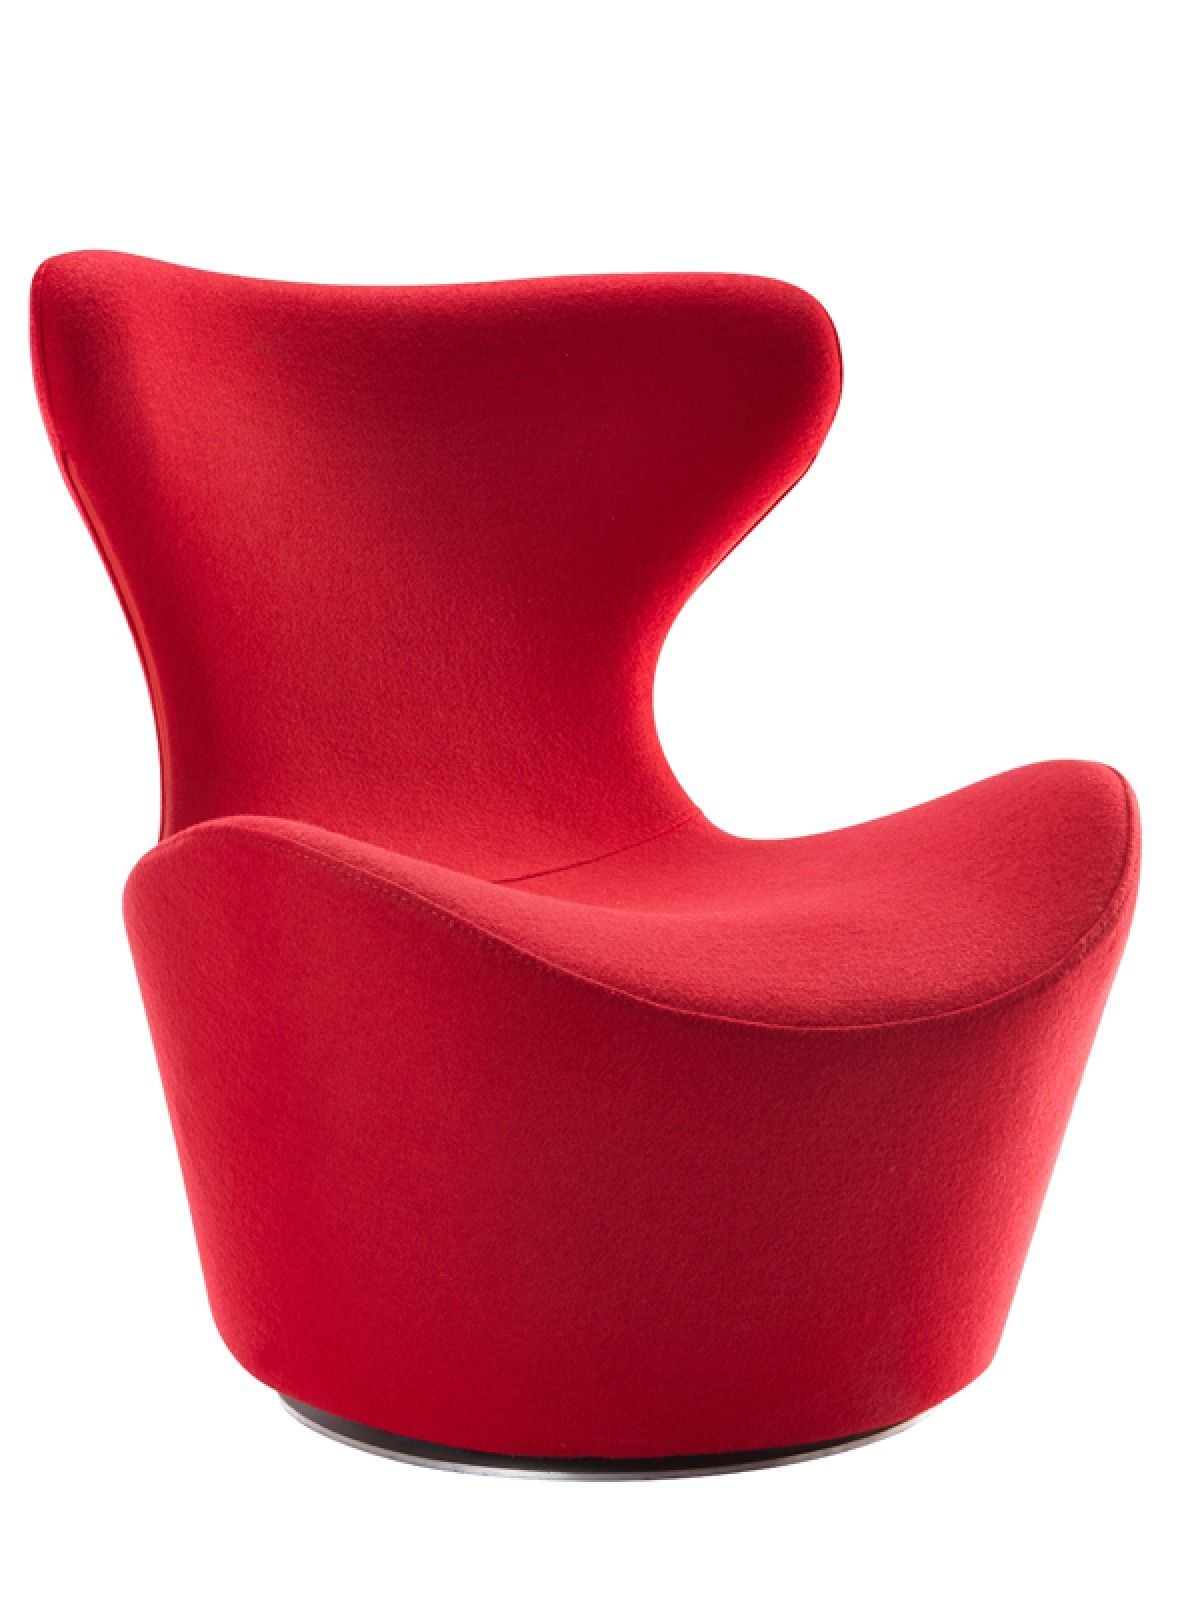 Modrest Hadrian Modern Red Fabric Accent Chair Lounge Lounge